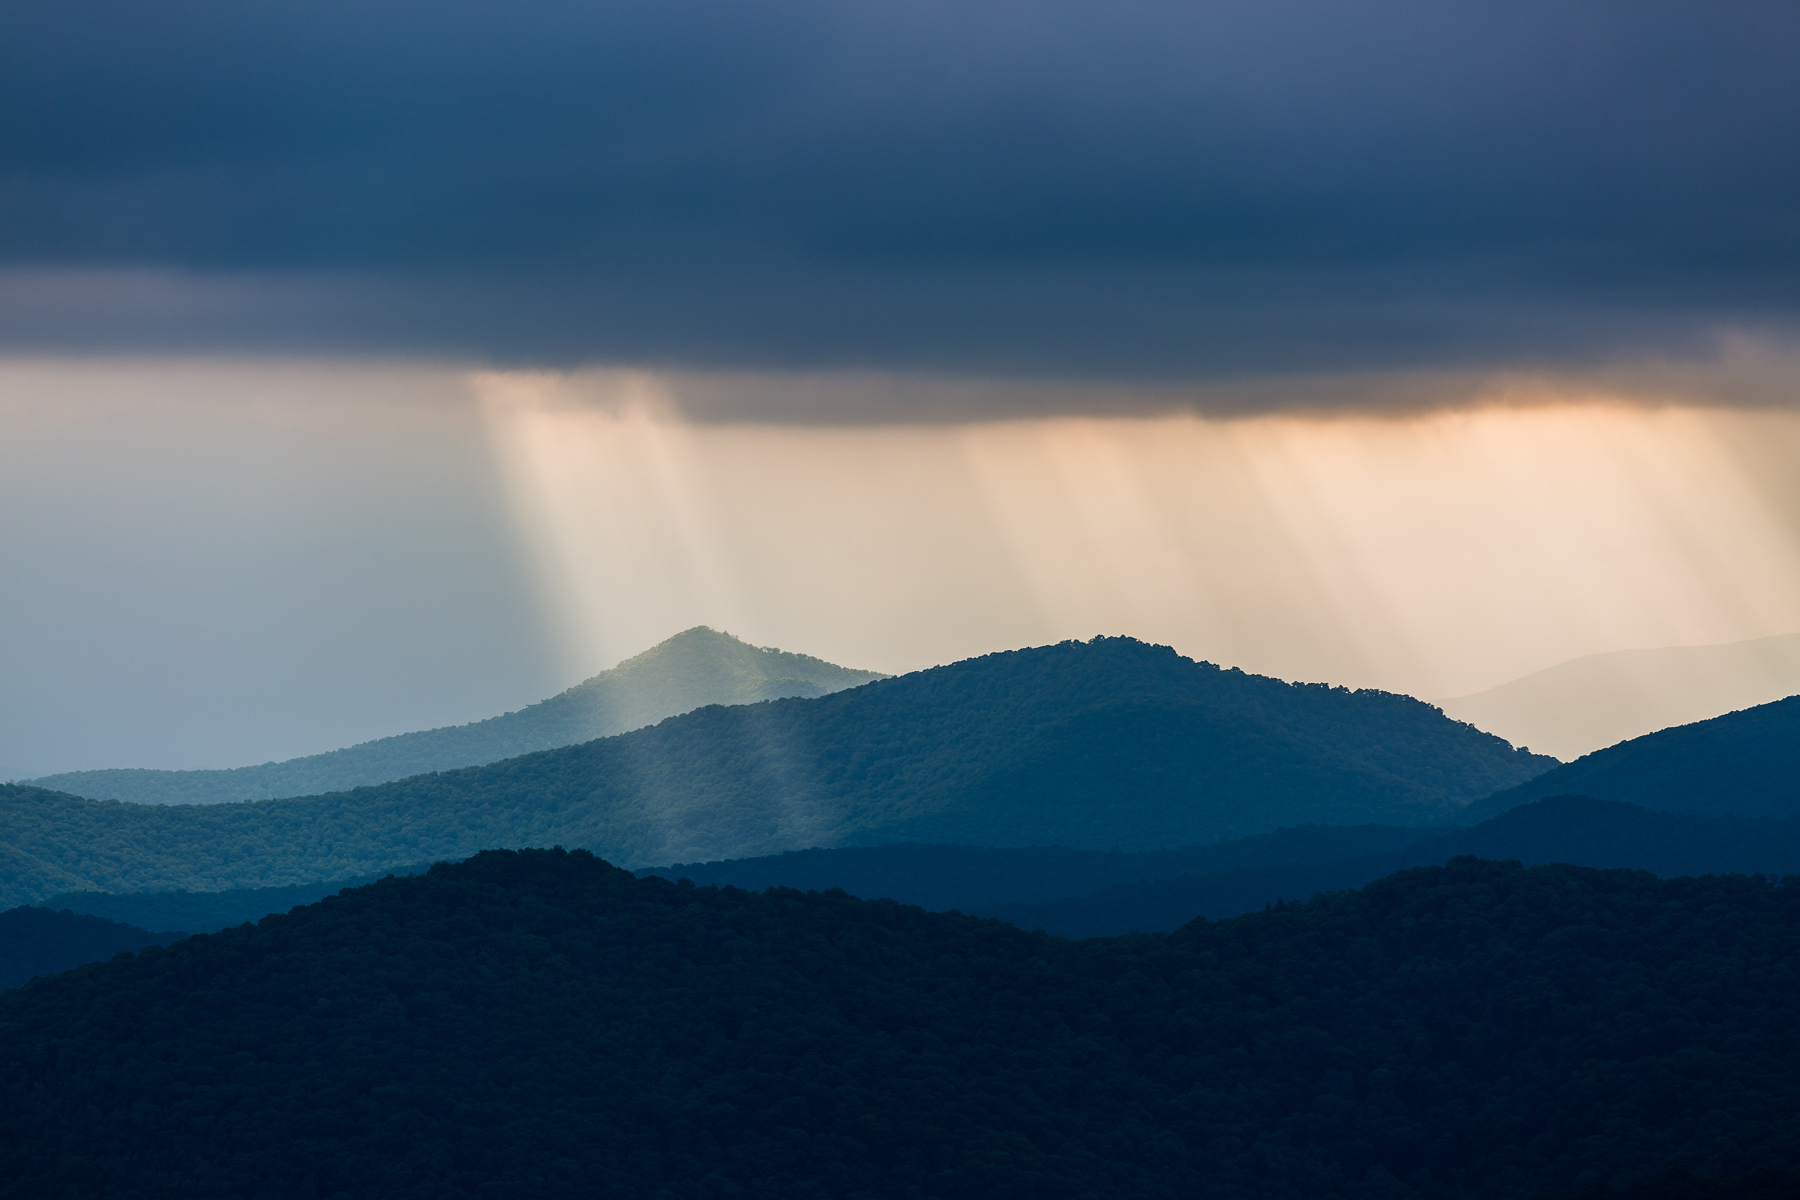 Mountain and Rays